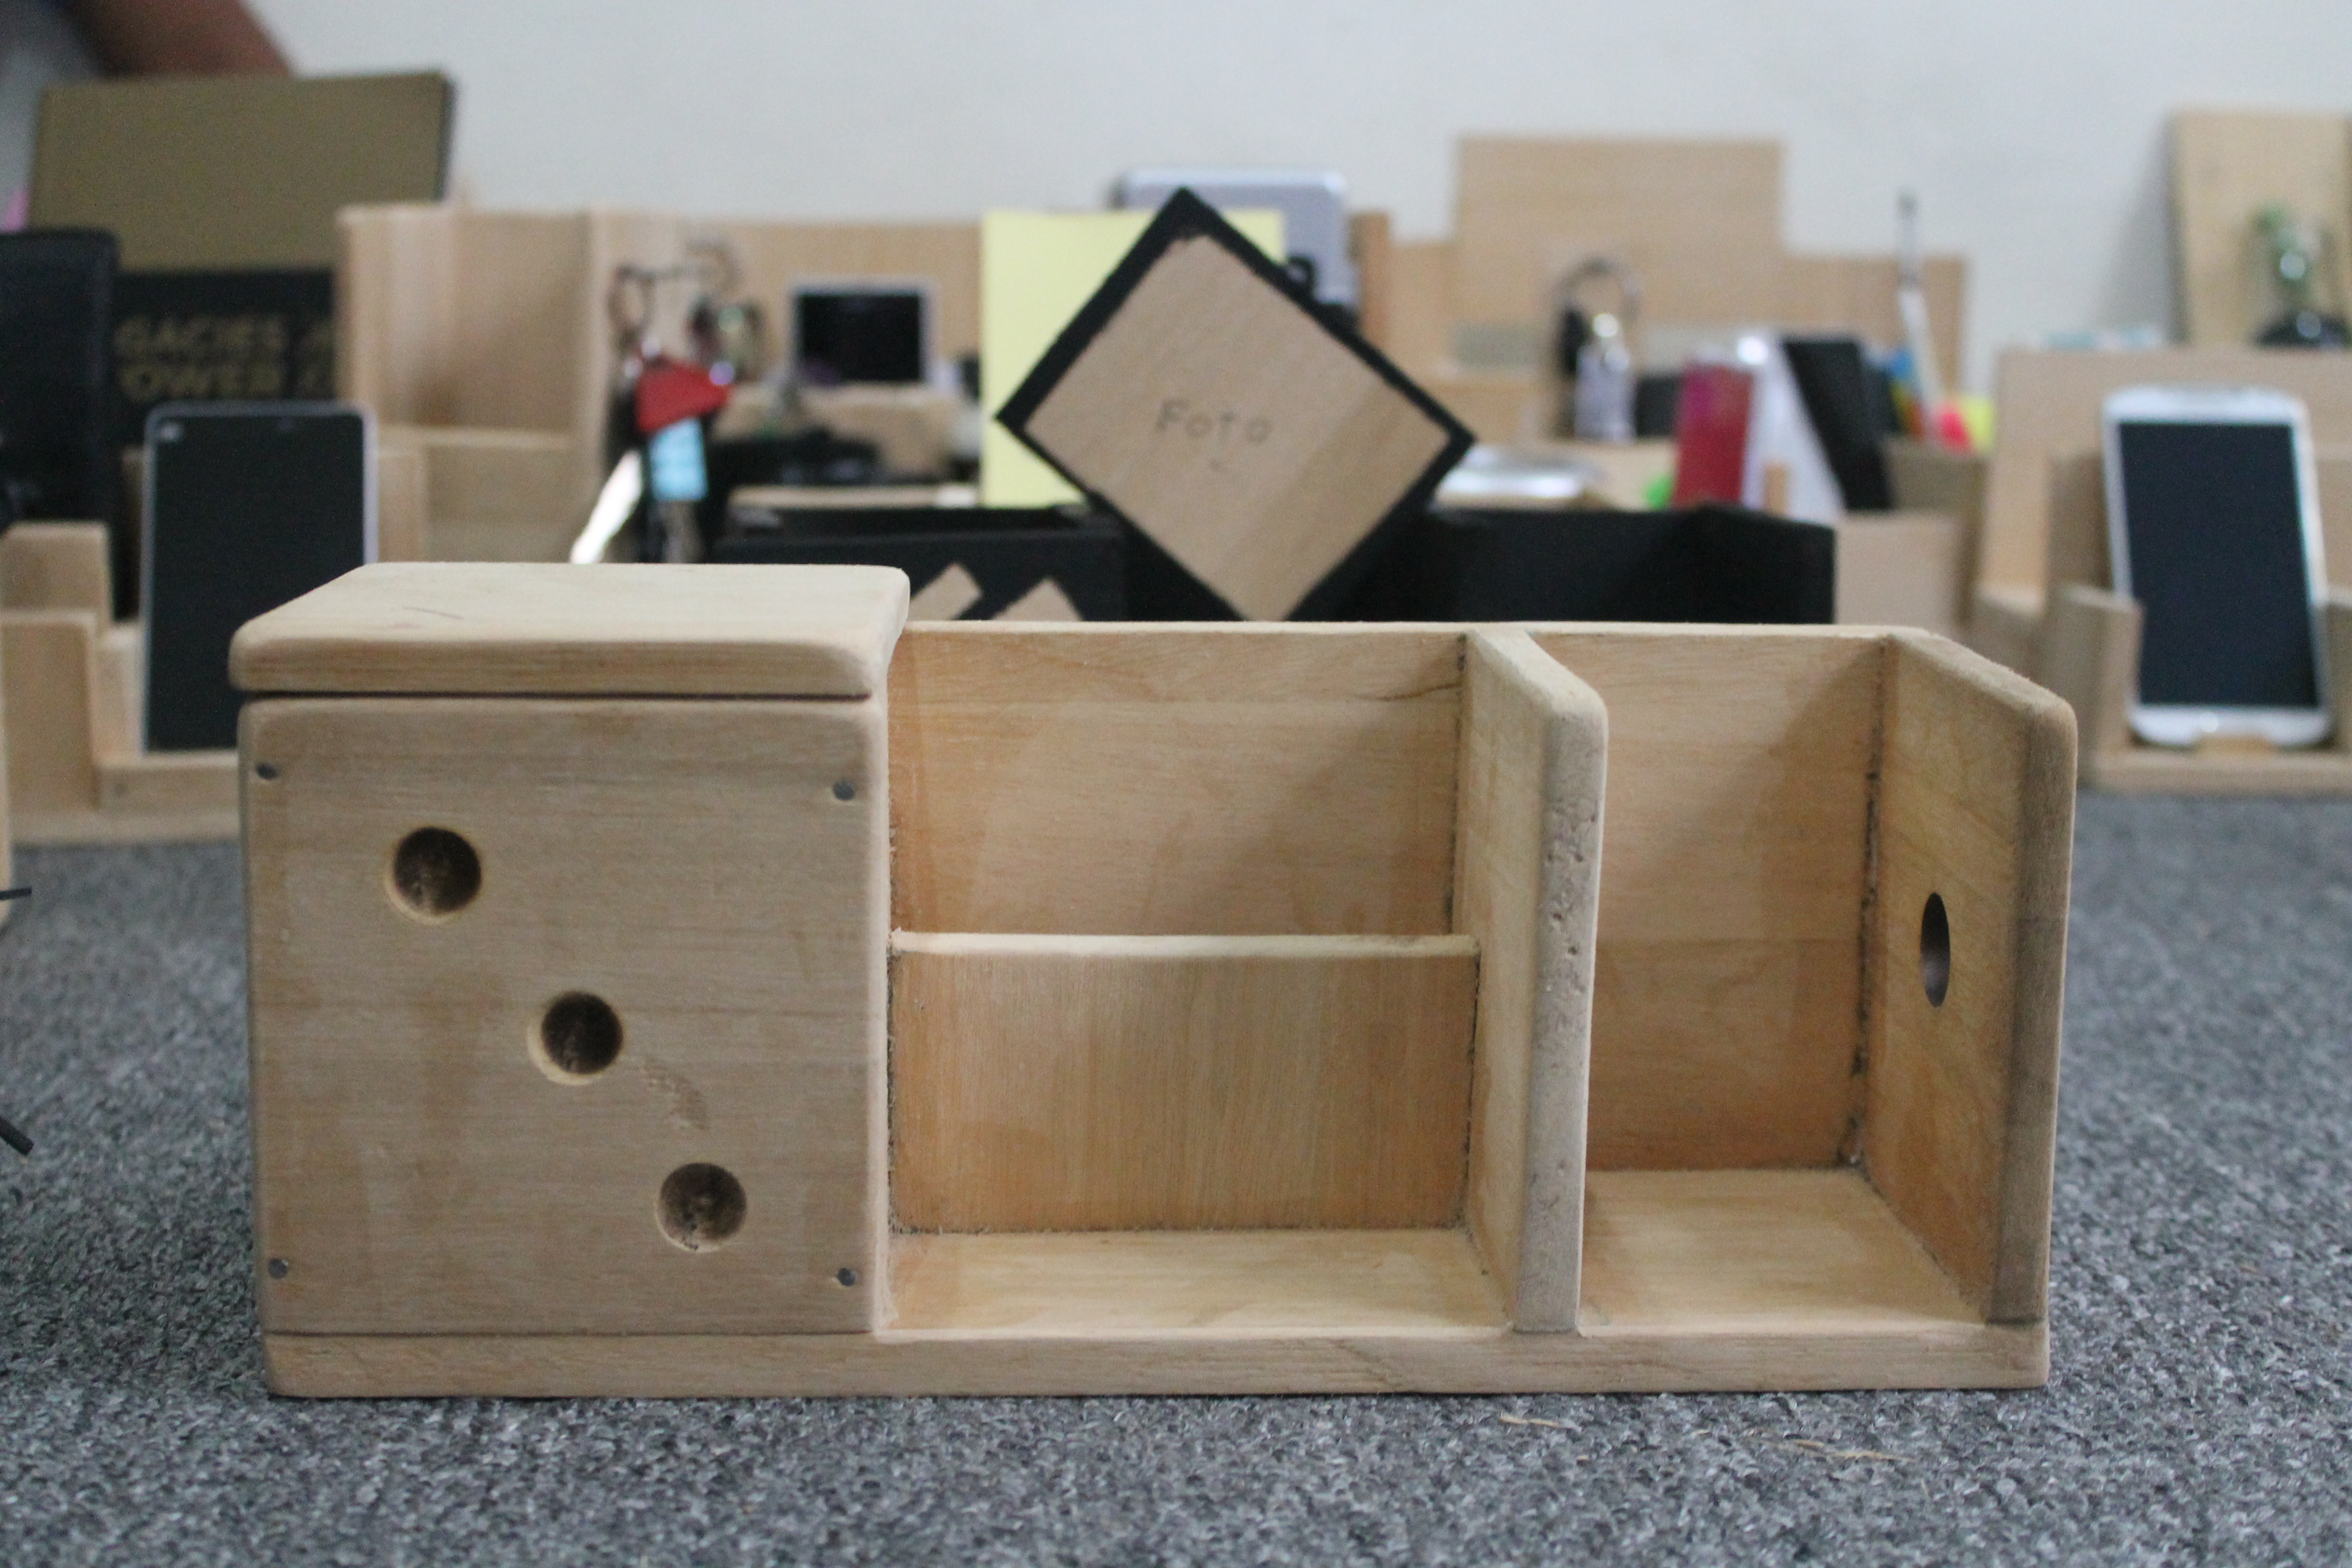 Play saturday crafting our very own diy wooden desk organizers blog - Wooden desk organizers ...